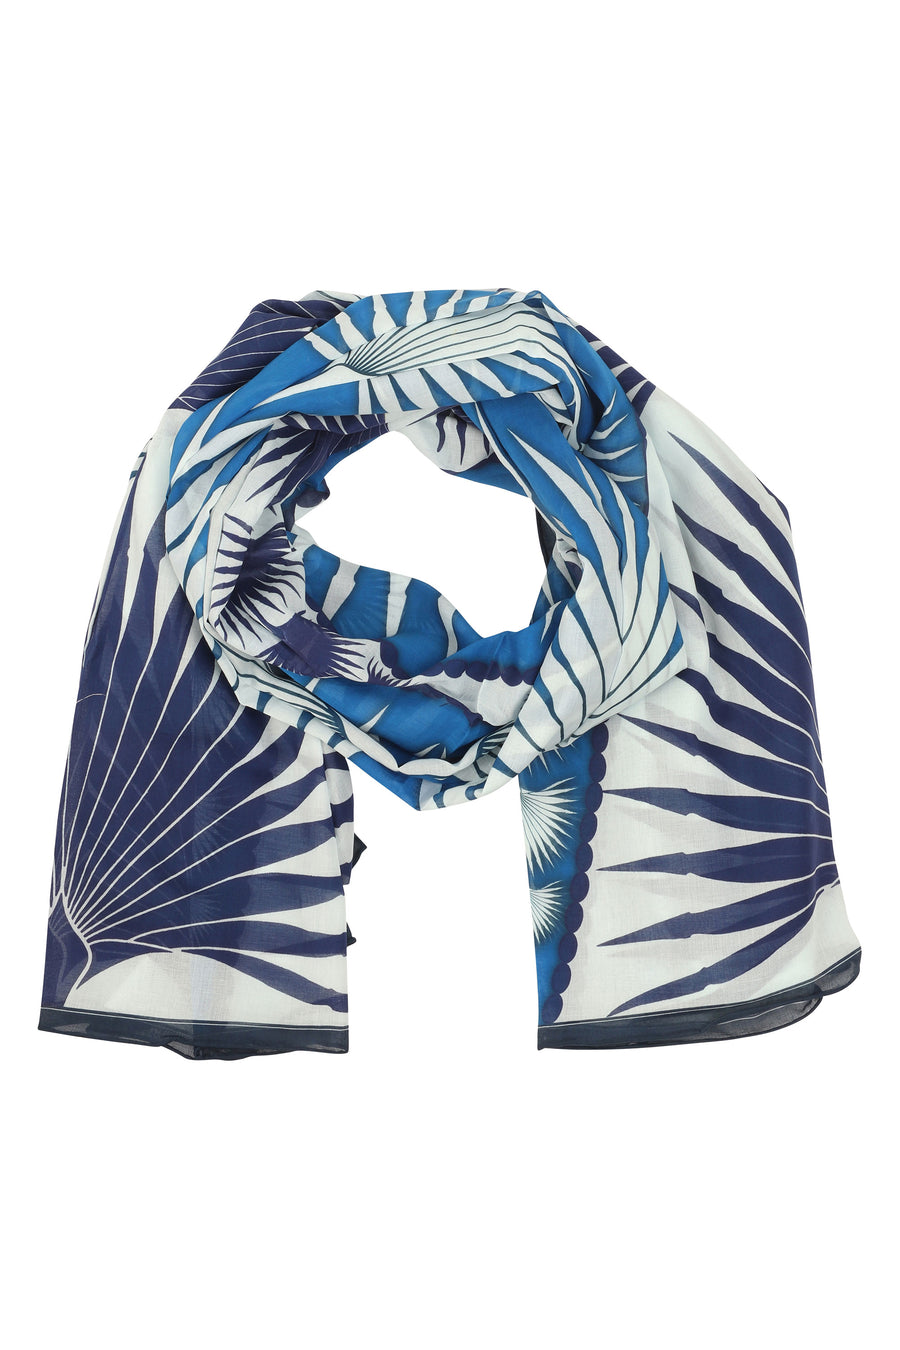 Lotty B Sarong in Cotton: FAN PALM - BLUE Mustique life